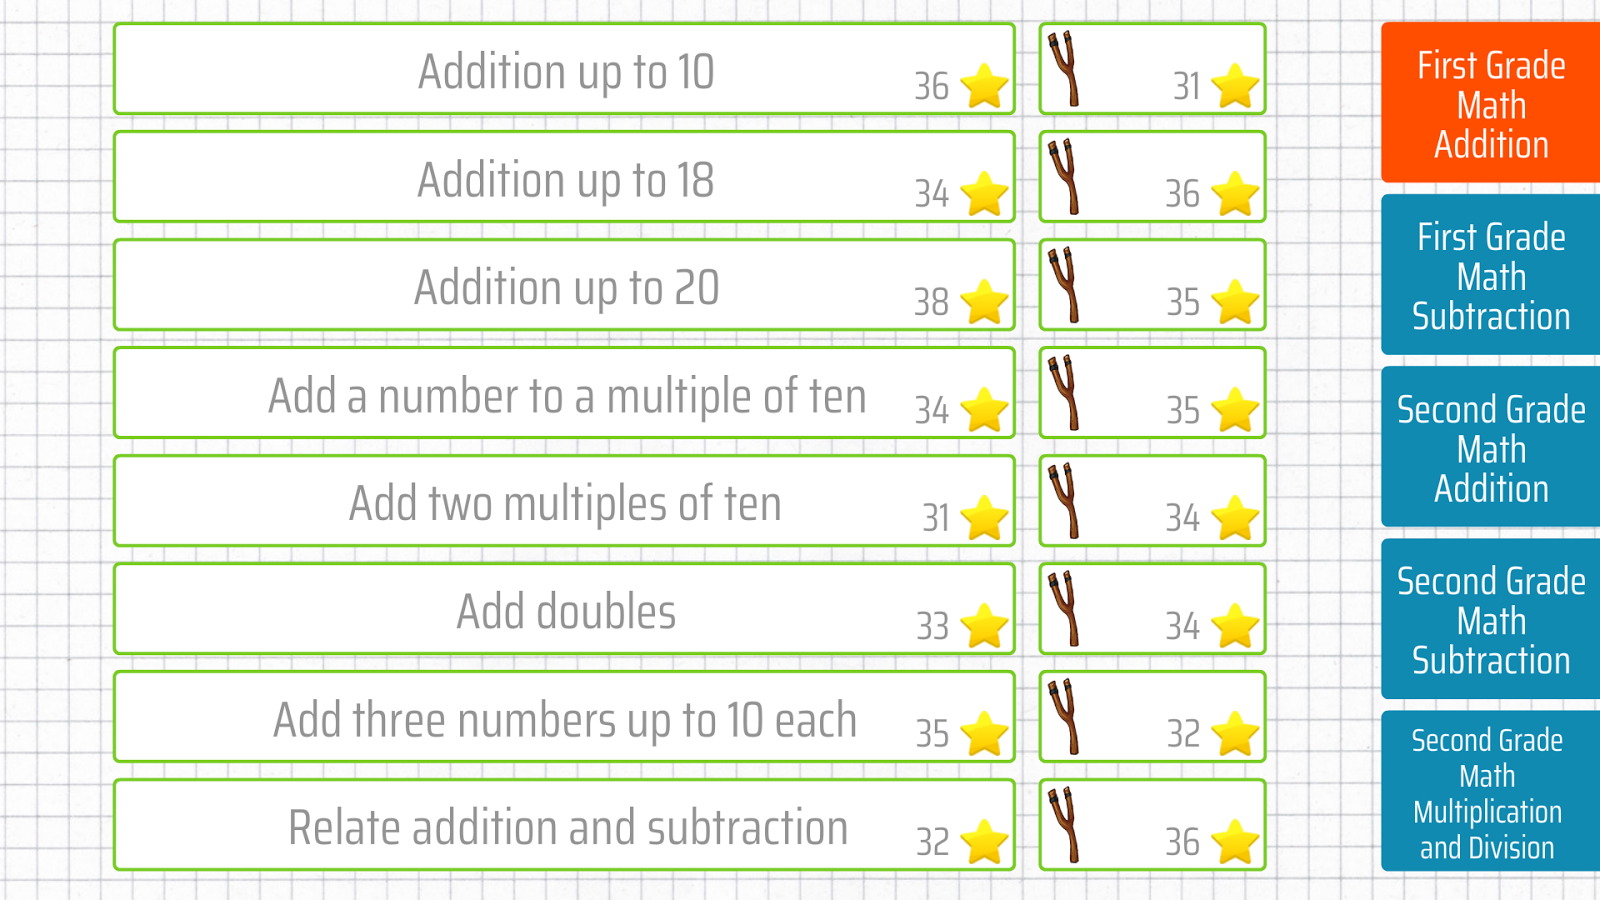 Worksheet First Grade Math Addition first grade math addition android apps on google play screenshot